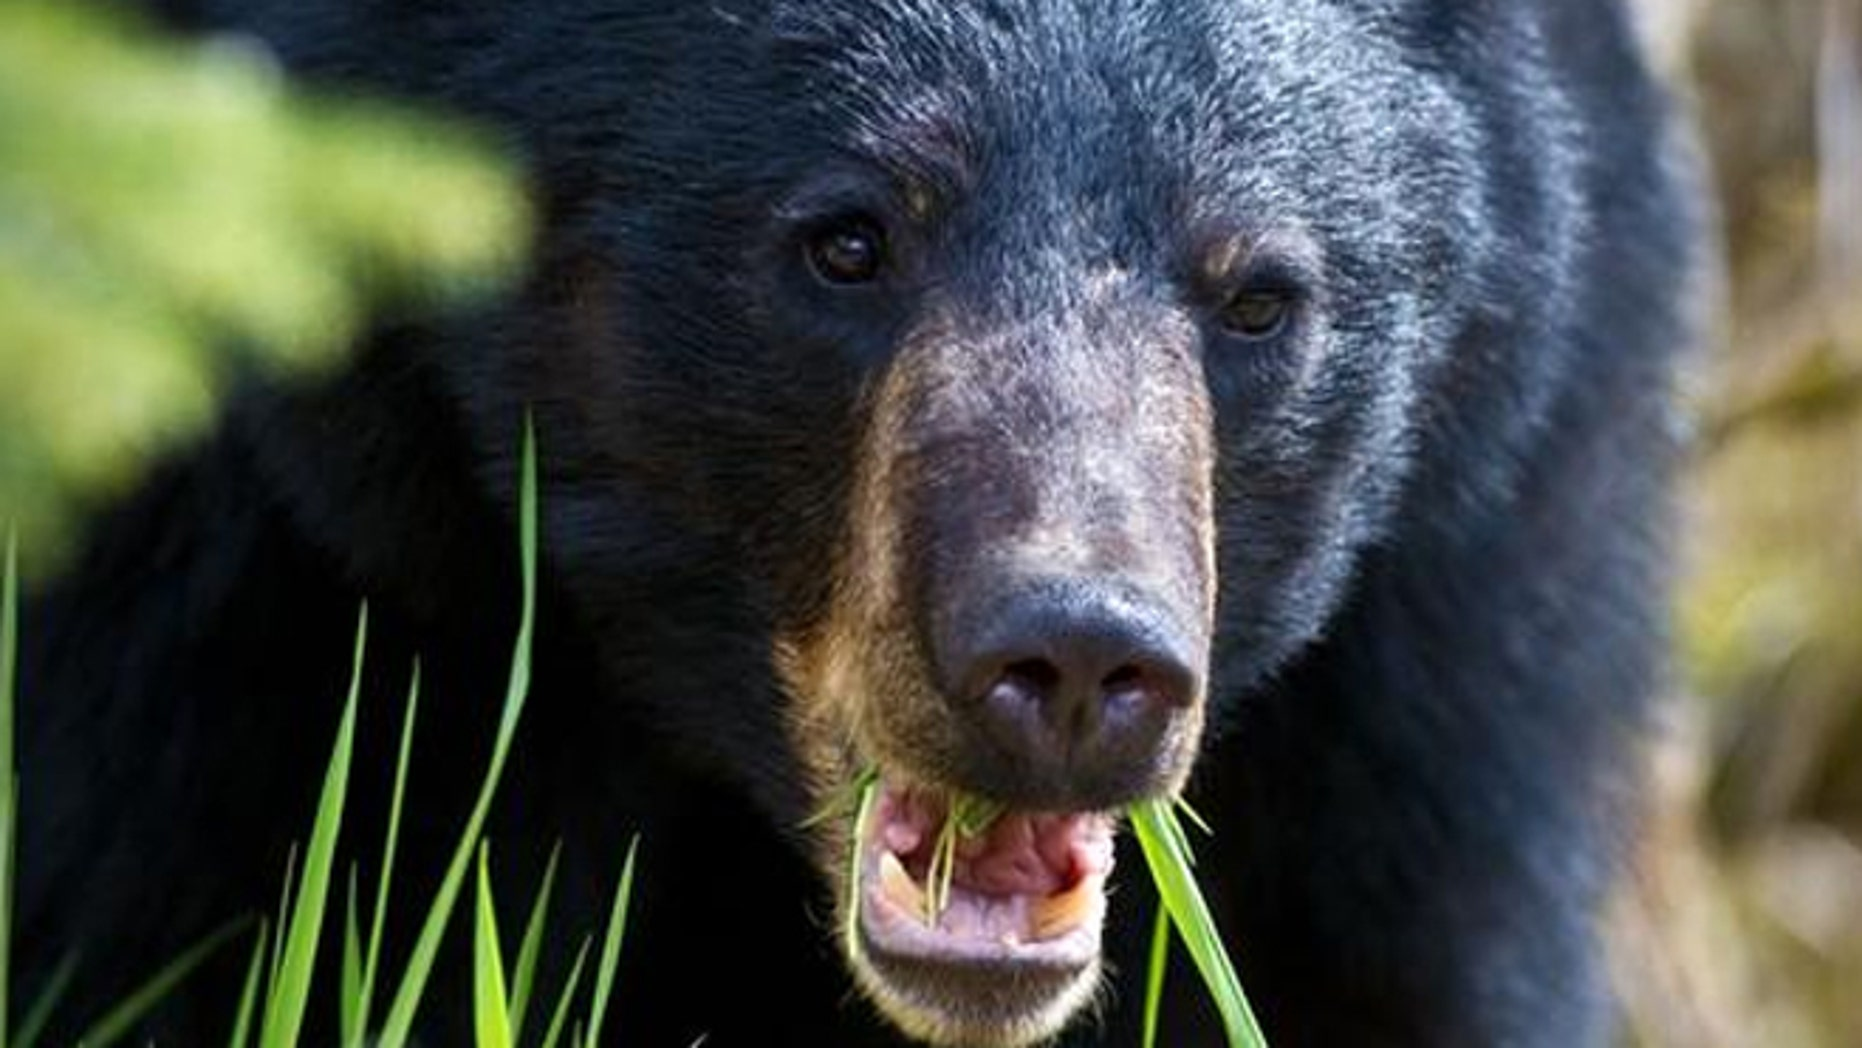 A black bear broke into an Idaho house and licked leftover Chinese food from a cast iron pan on the stove.